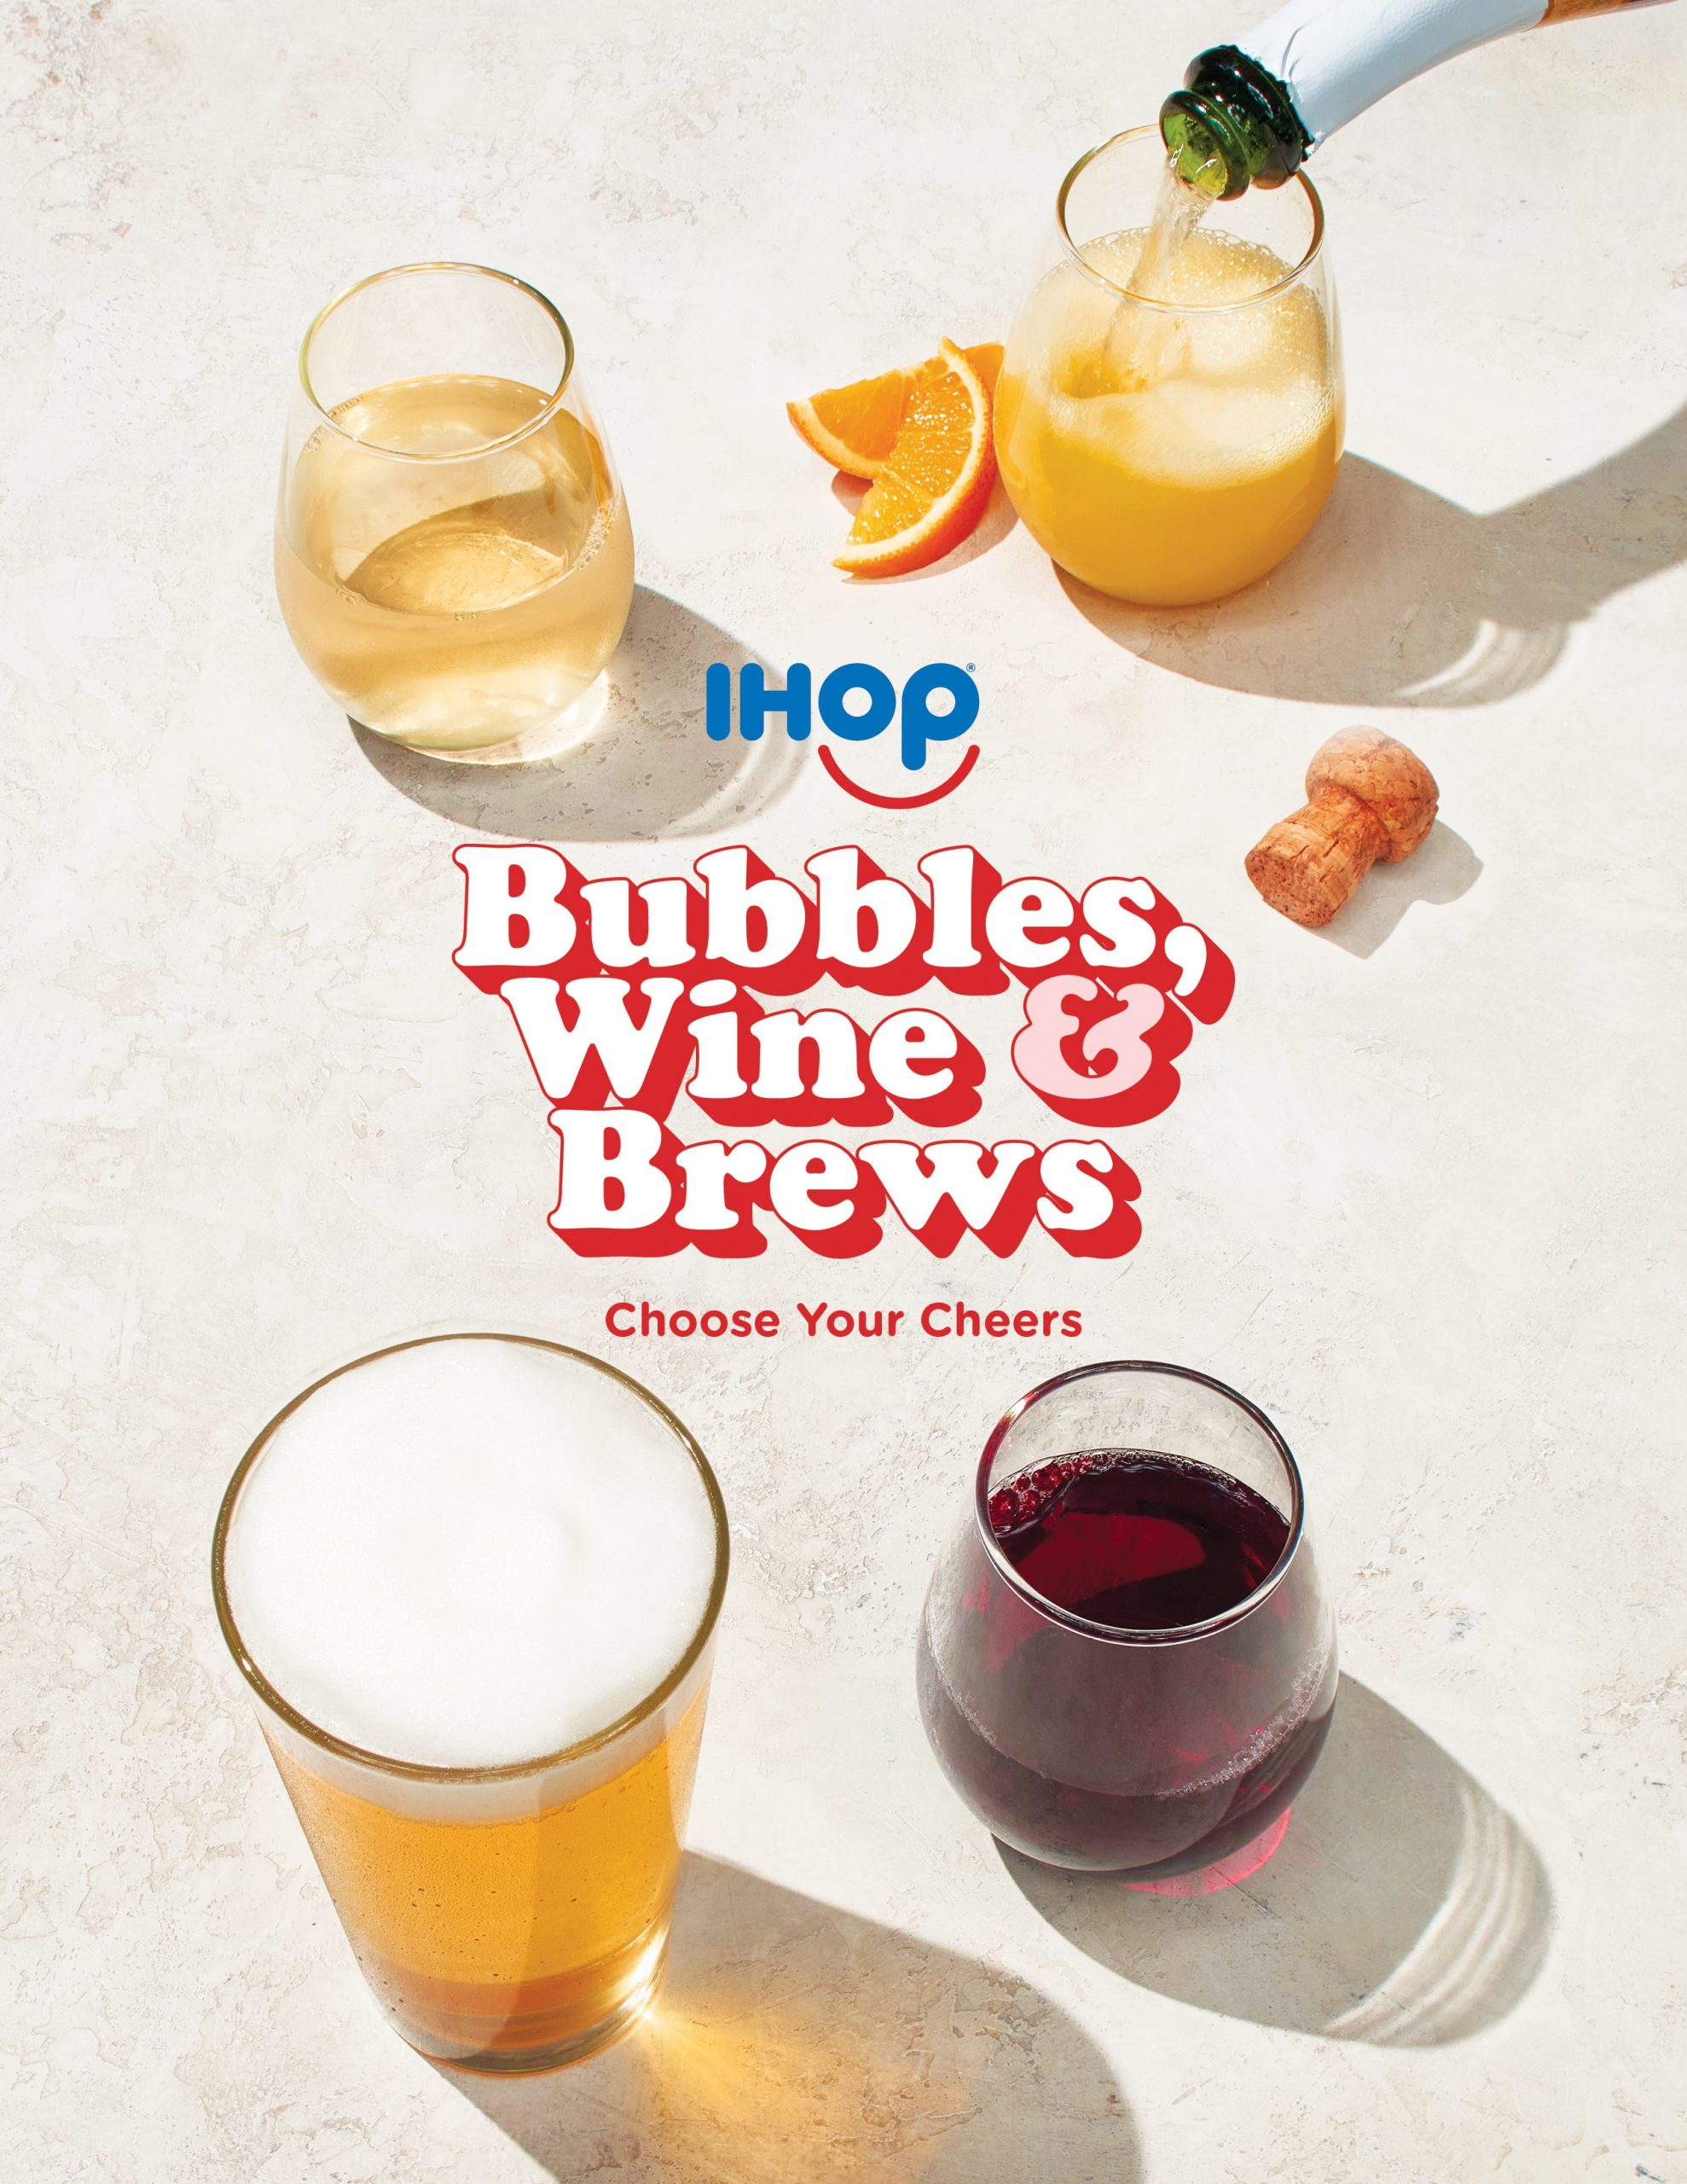 Mimosa with breakfast? IHOP is testing an alcohol menu with beer, wine and champagne at select locations